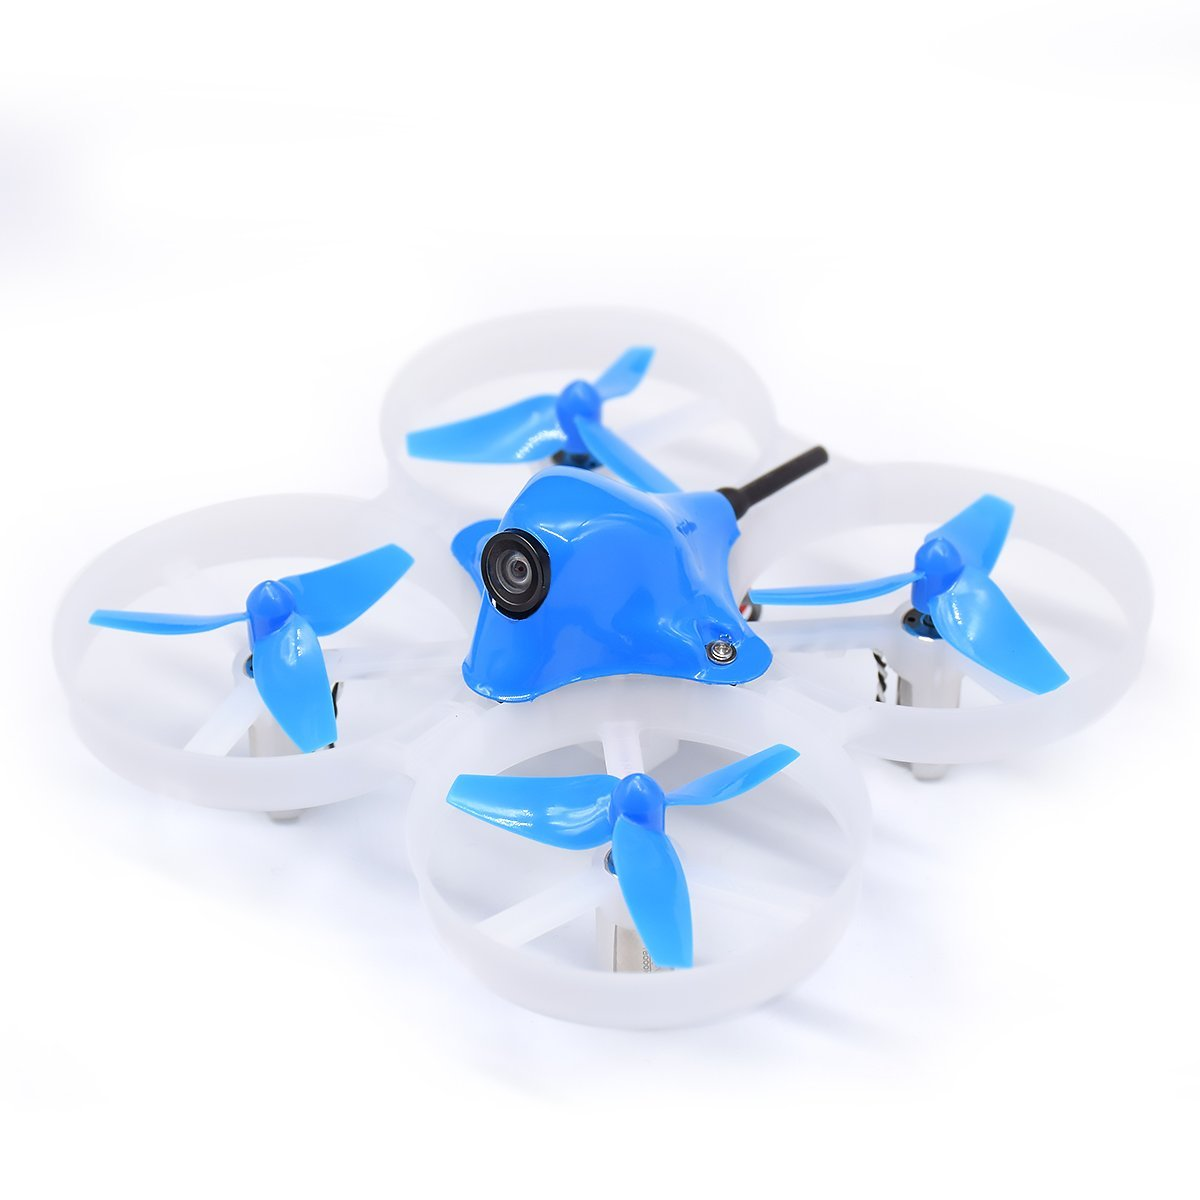 Beta85 BNF Micro Whoop Quadcopter OSD Frsky Receiver with 8.5x20 Motor